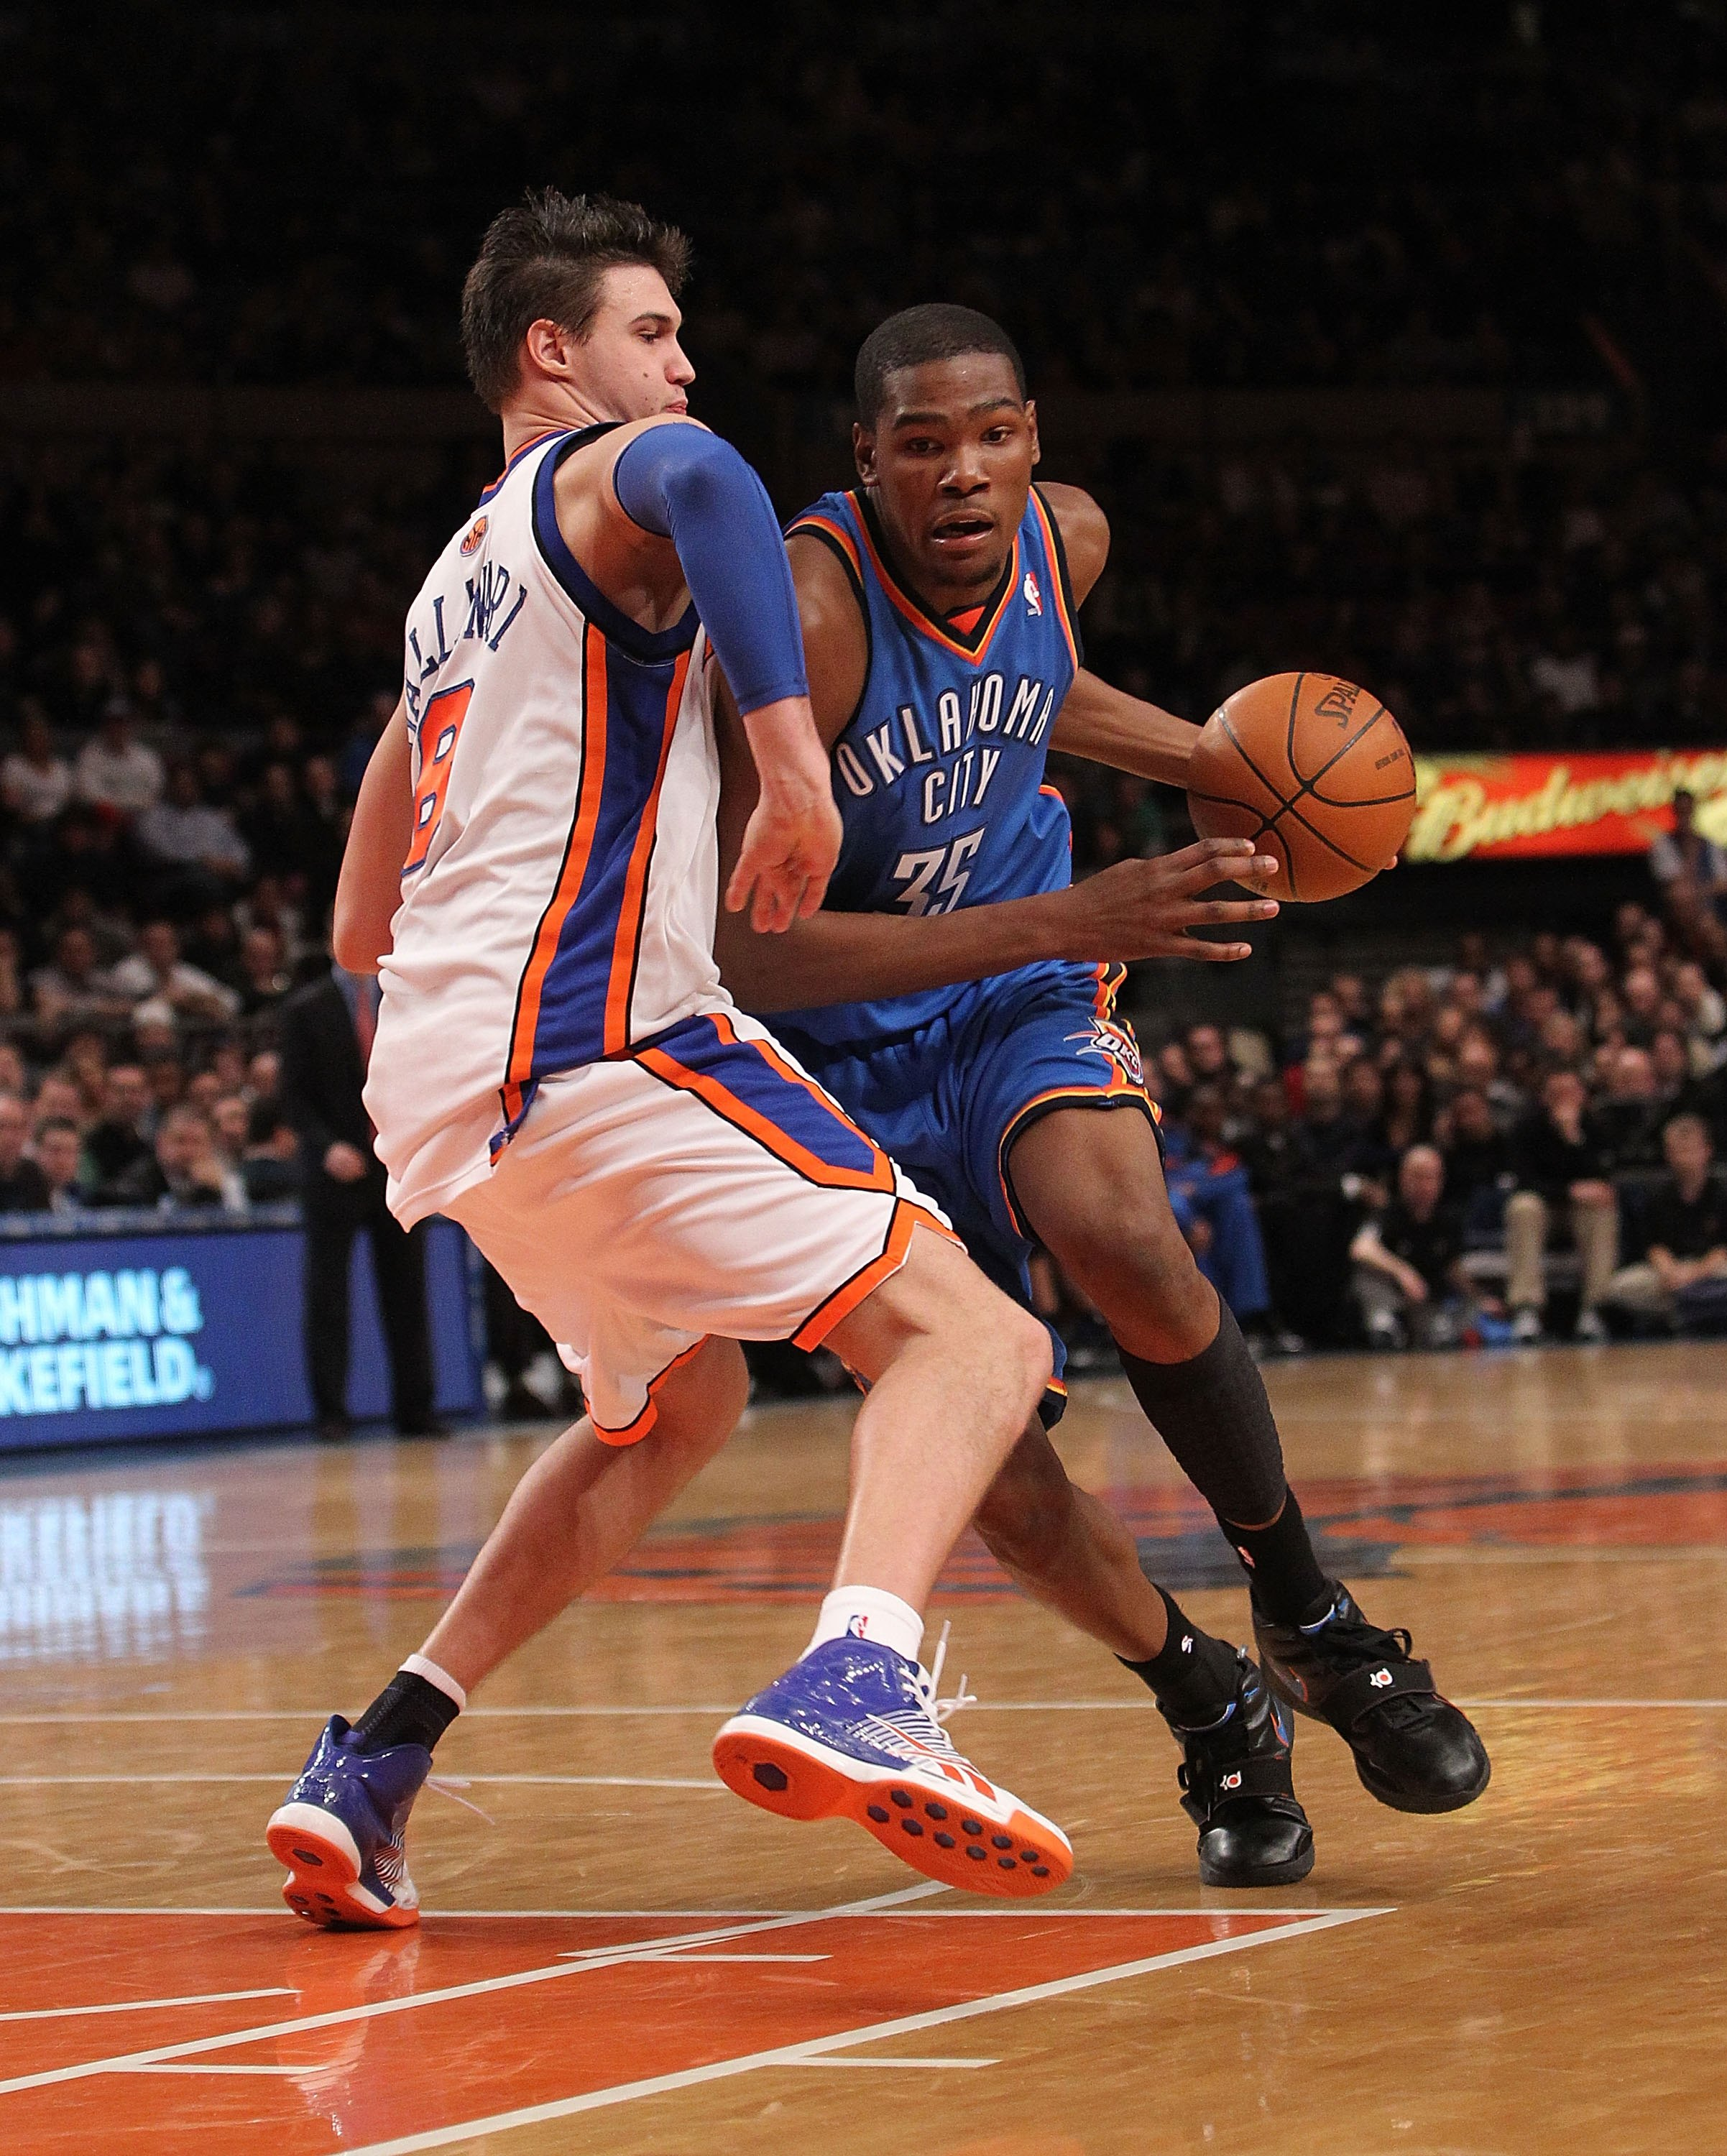 NEW YORK - FEBRUARY 20:  Kevin Durant #35 of the Oklahoma City Thunder against Danilo Galinari #8 of the New York Knicks at Madison Square Garden on February 20, 2010 in New York, New York. NOTE TO USER: User expressly acknowledges and agrees that, by dow